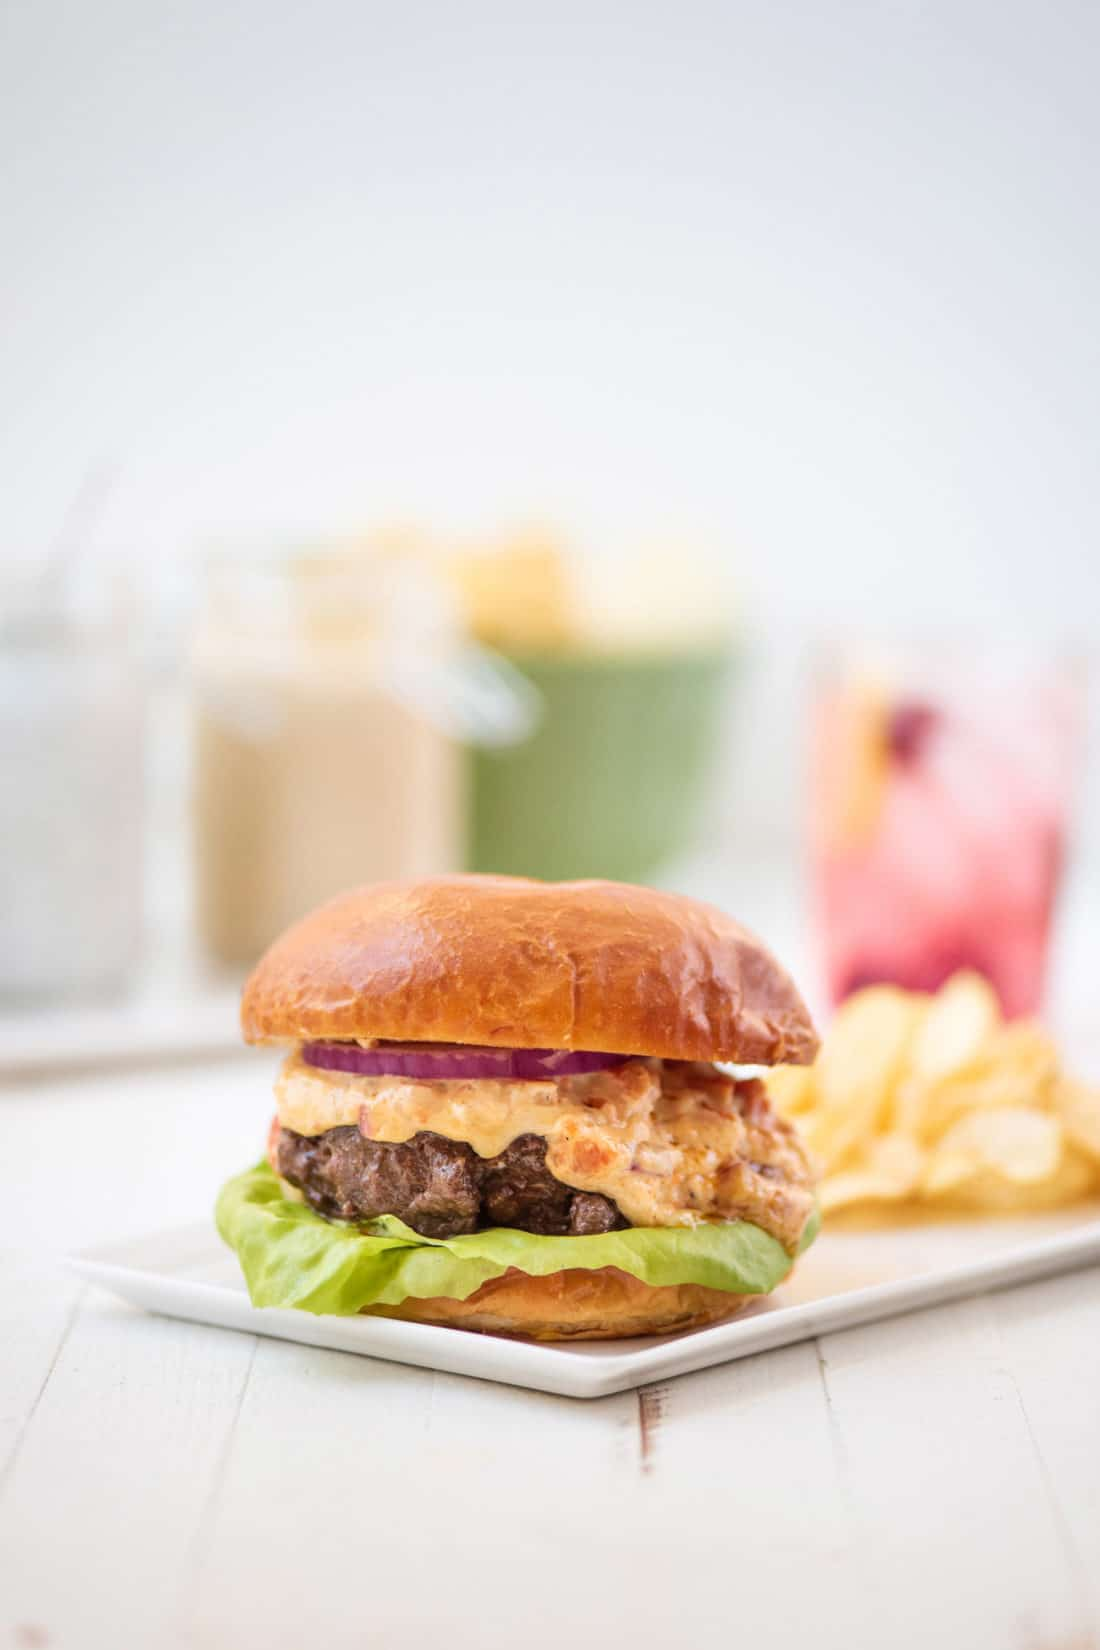 Burger with Pimento Cheese Spread / Photo by Kerri Brewer / Katie Workman / themom100.com